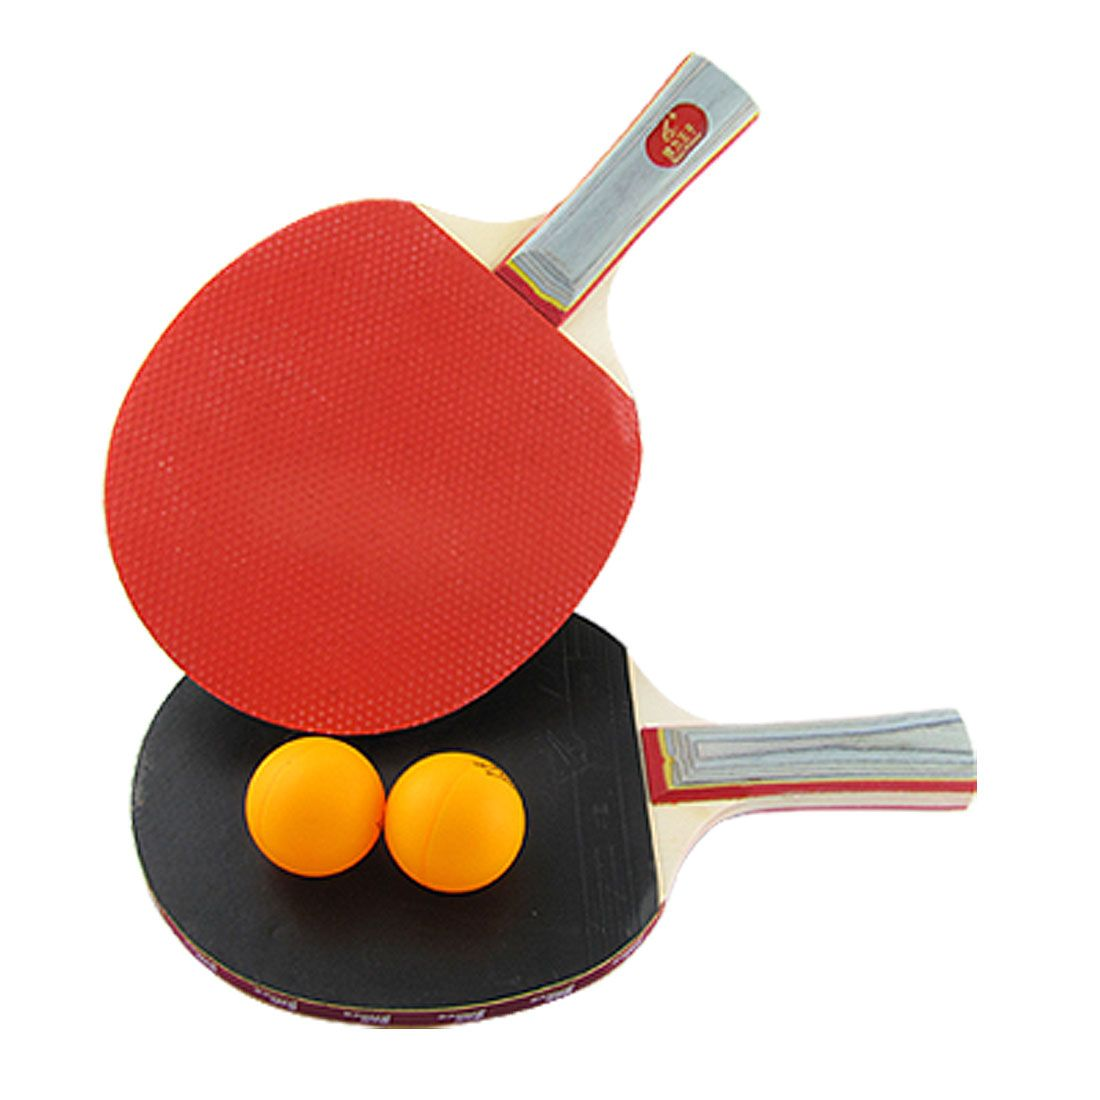 Recreational Ping Pong Paddle Table Tennis Racket Sidewards Balls Table Tennis Racket Ping Pong Table Tennis Table Tennis